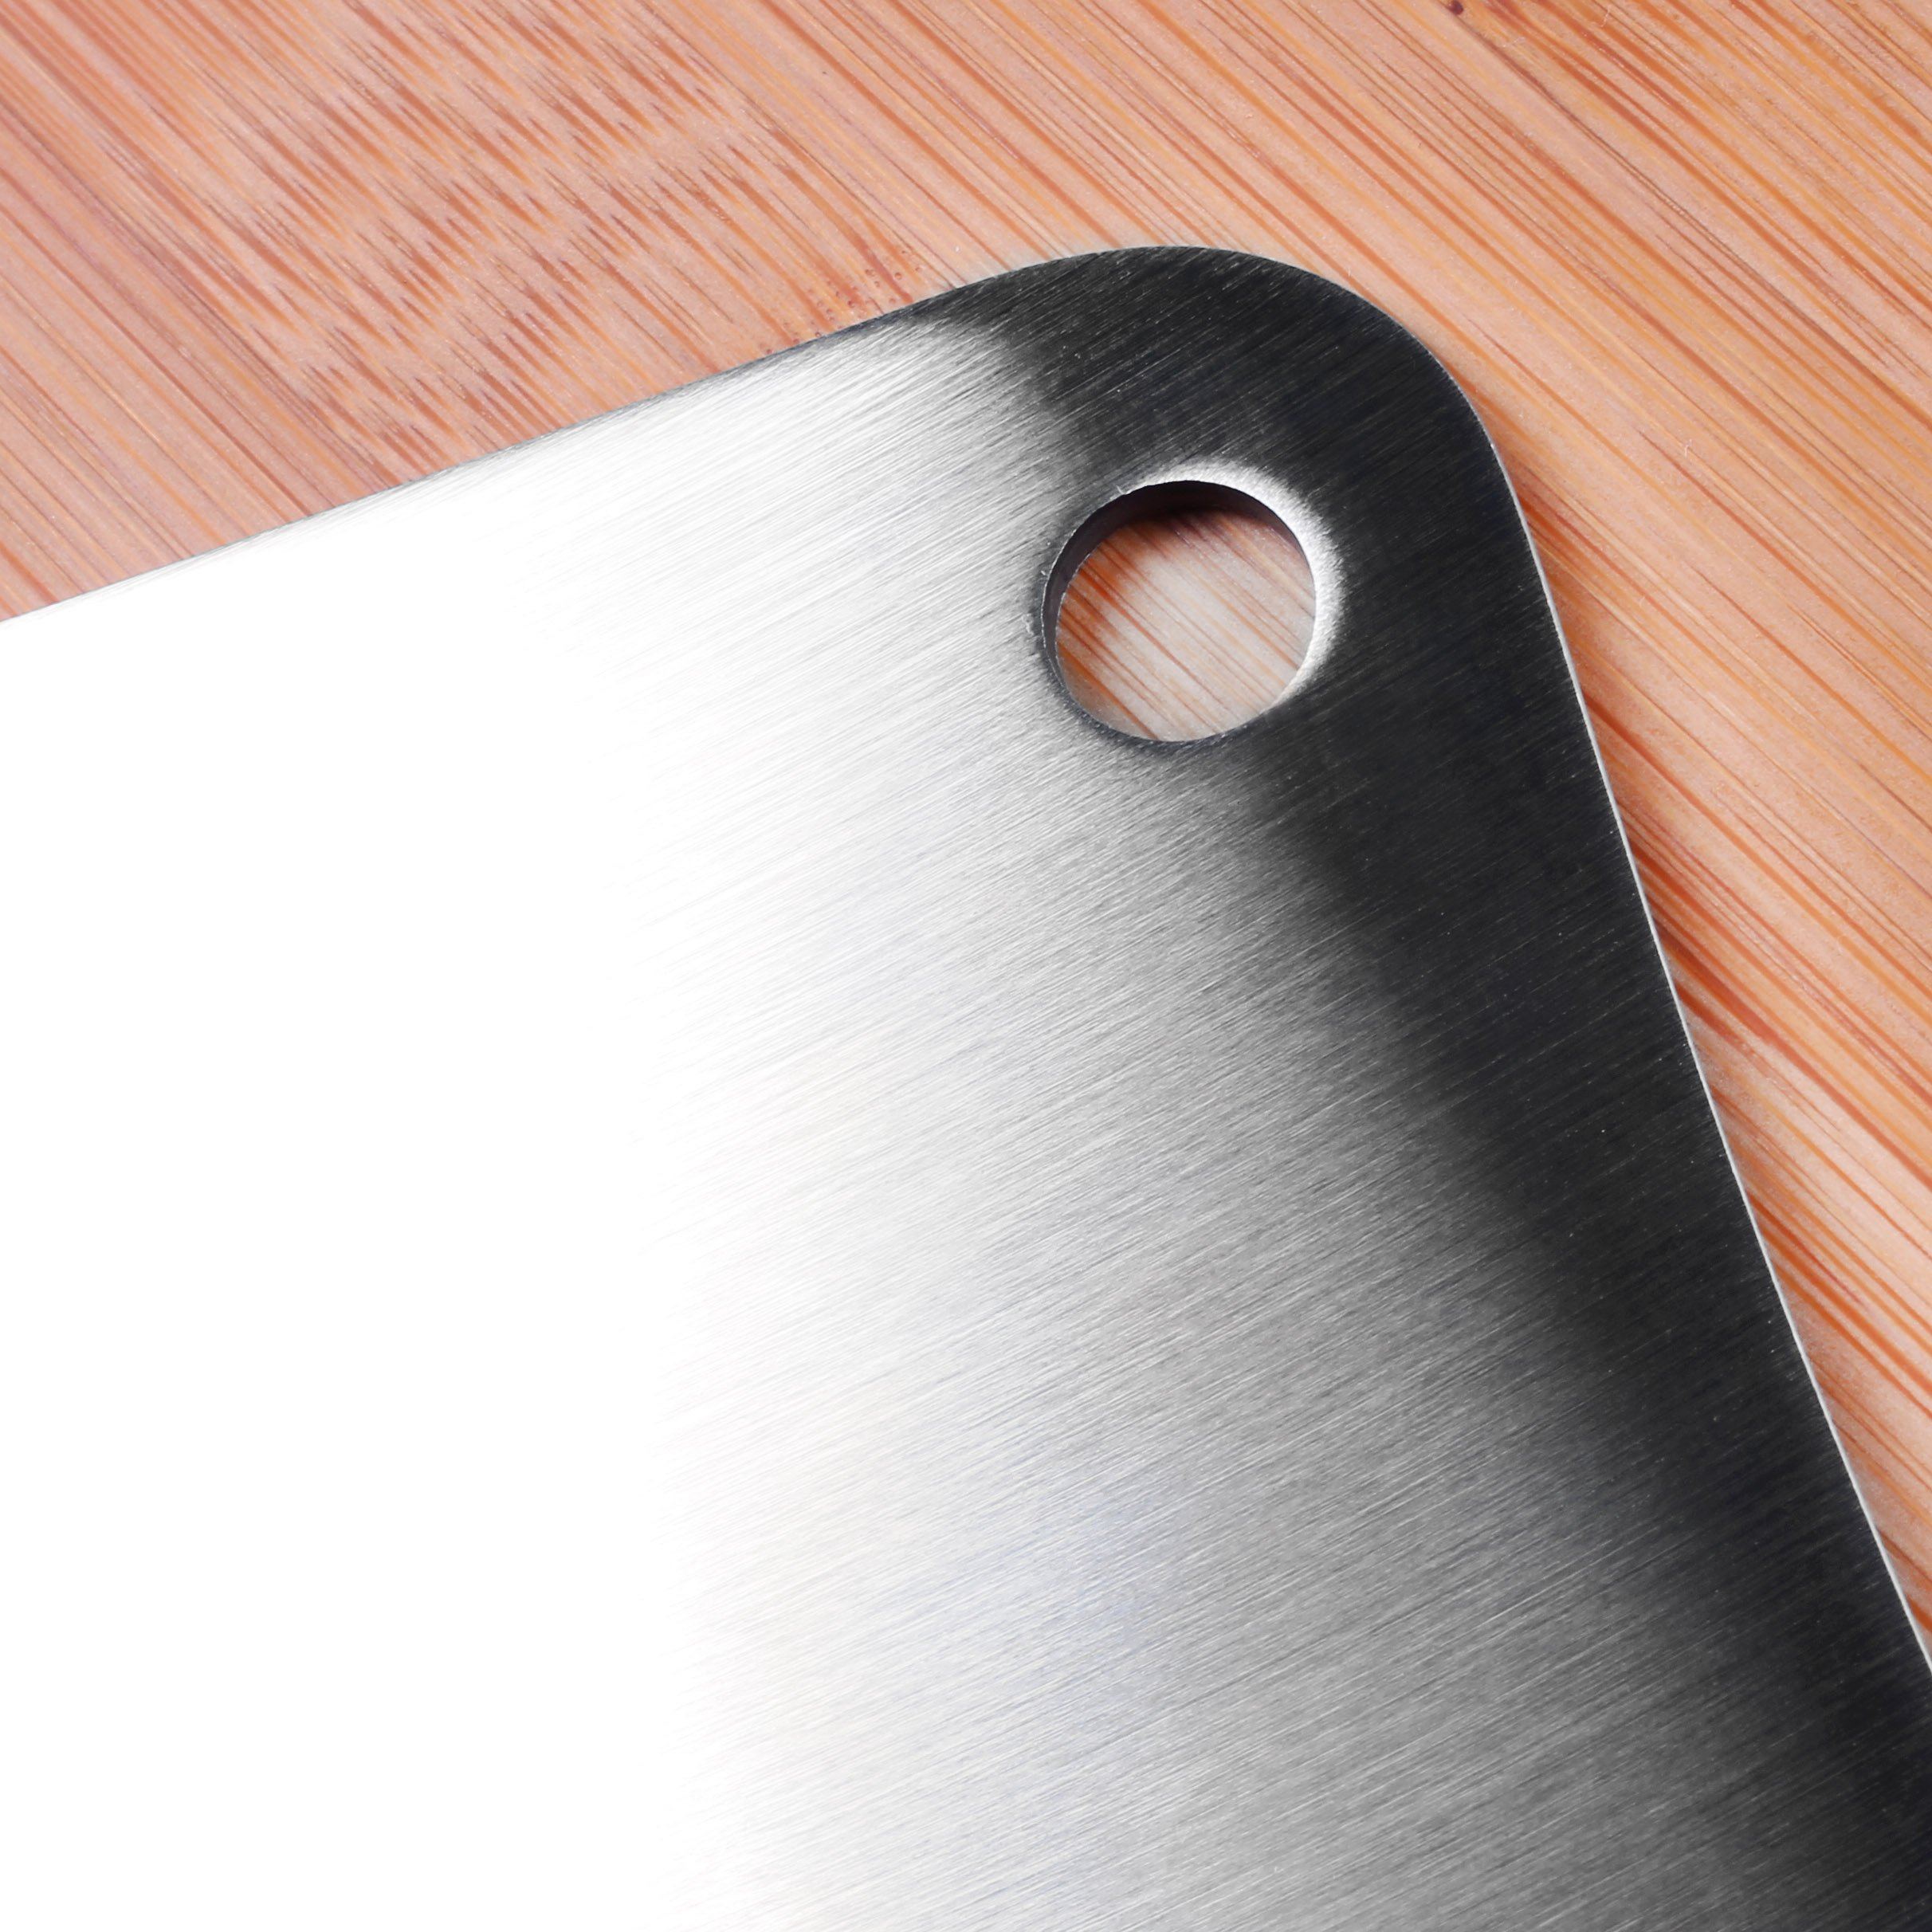 Utopia Kitchen 7 Inches Stainless Steel Cleaver - Chopper Butcher Knife - Multipurpose Use for Home Kitchen or Restaurant by Utopia Kitchen (Image #7)